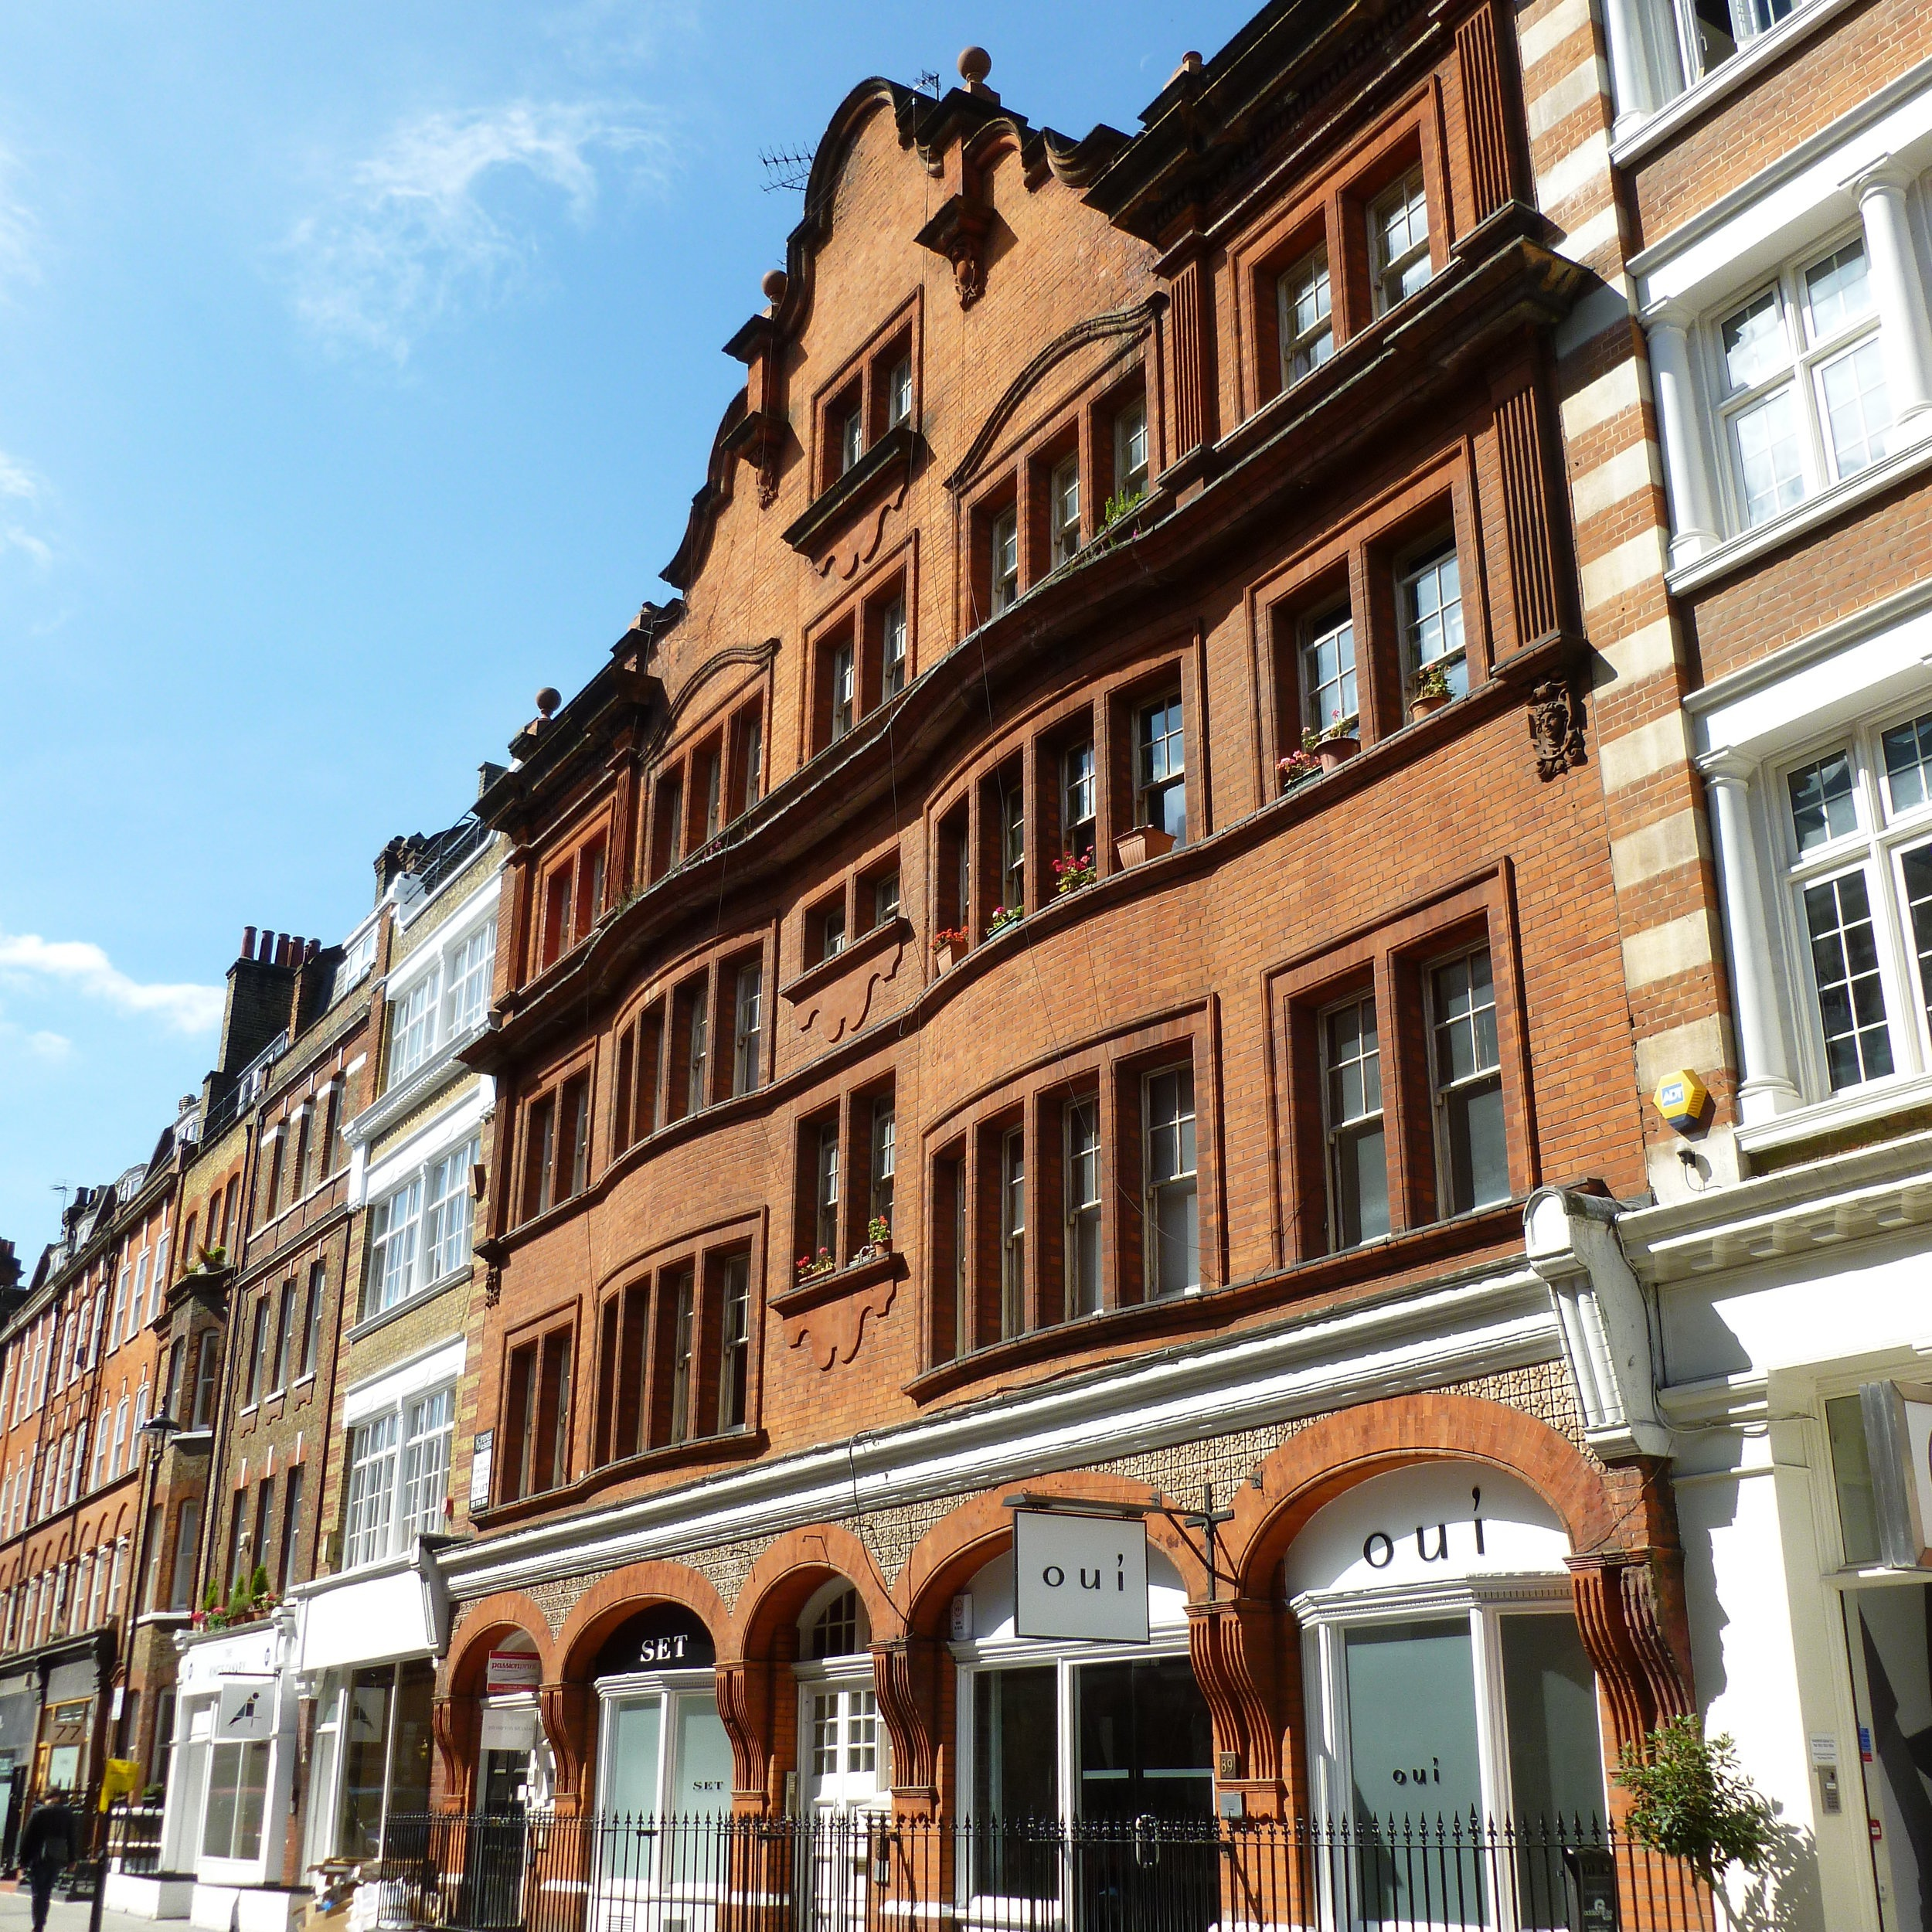 great titchfield st, fitzrovia - A parade of 3 buildings comprising of apartments, offices, shops and showrooms, this investment presented a number of asset management opportunities.Minor refurbishments were carried out to the various vacant units and once fully let, we turned our attention to securing planning consents to change the use, extend and develop where appropriate on the site.The building was sold just over three years after it was acquired, for a sale price over double that of the purchase price.